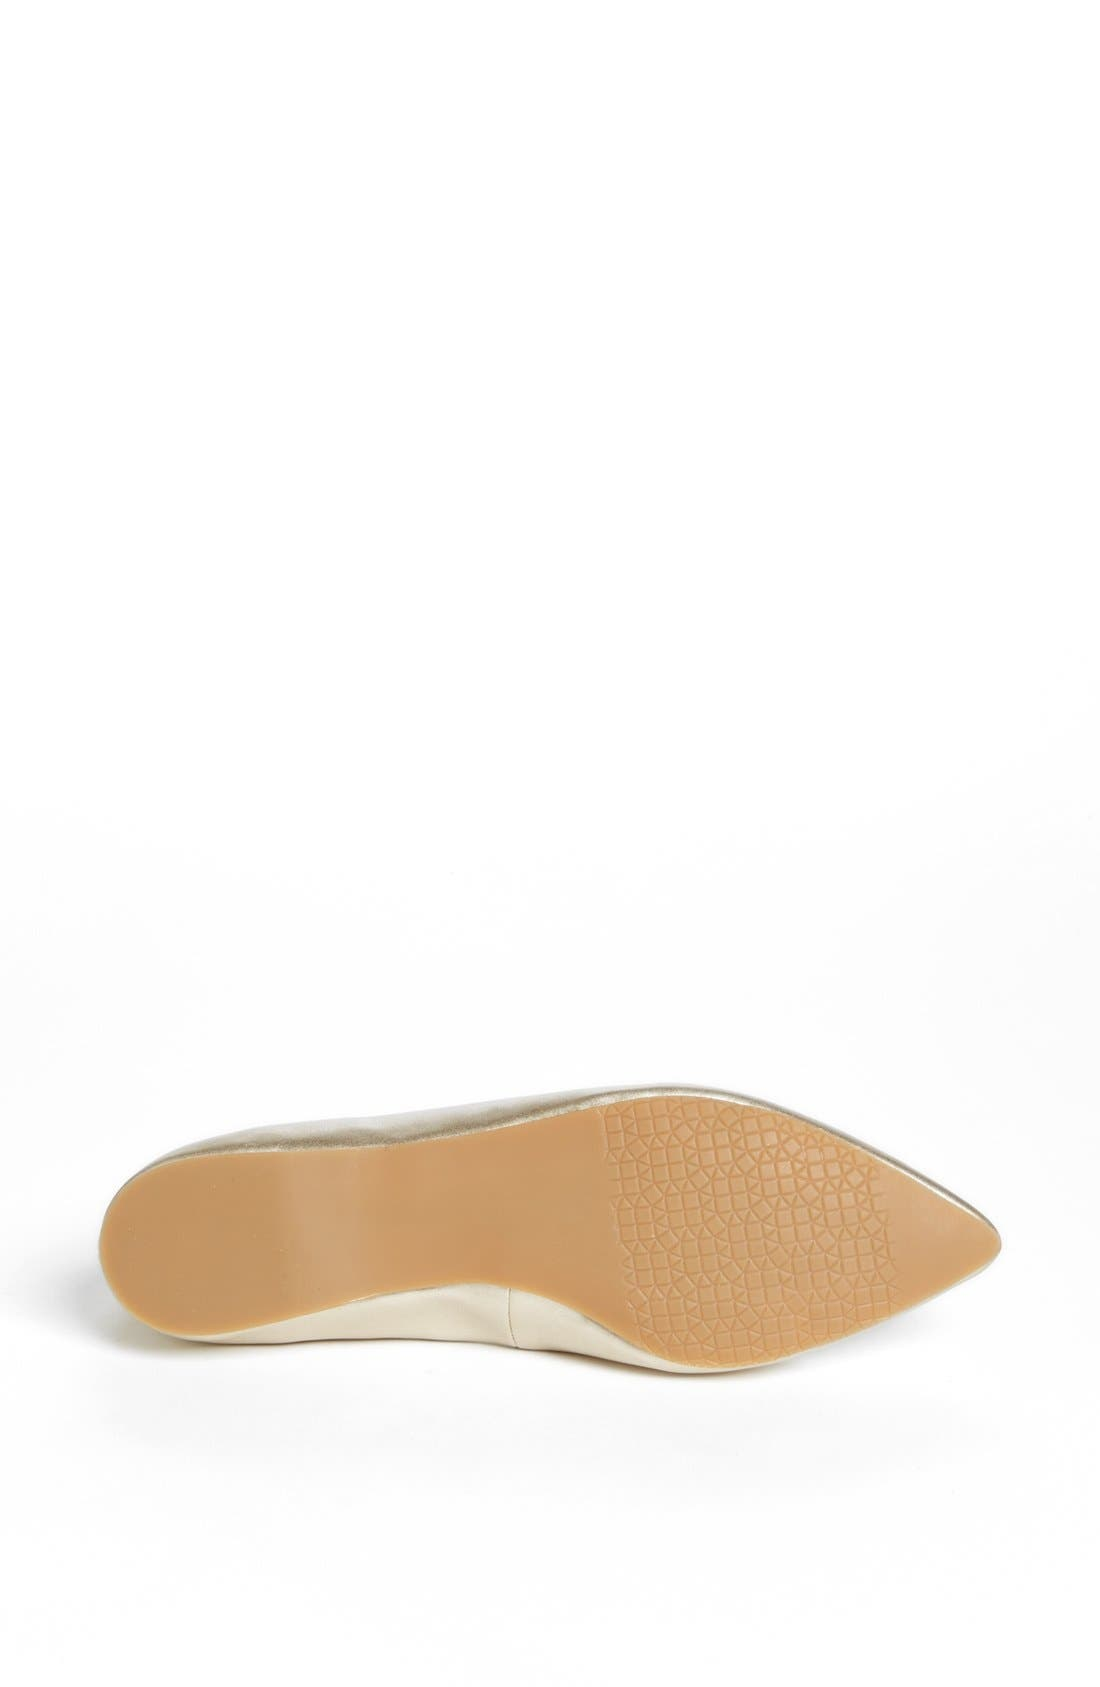 'Moveover' Pointy Toe Flat,                             Alternate thumbnail 51, color,